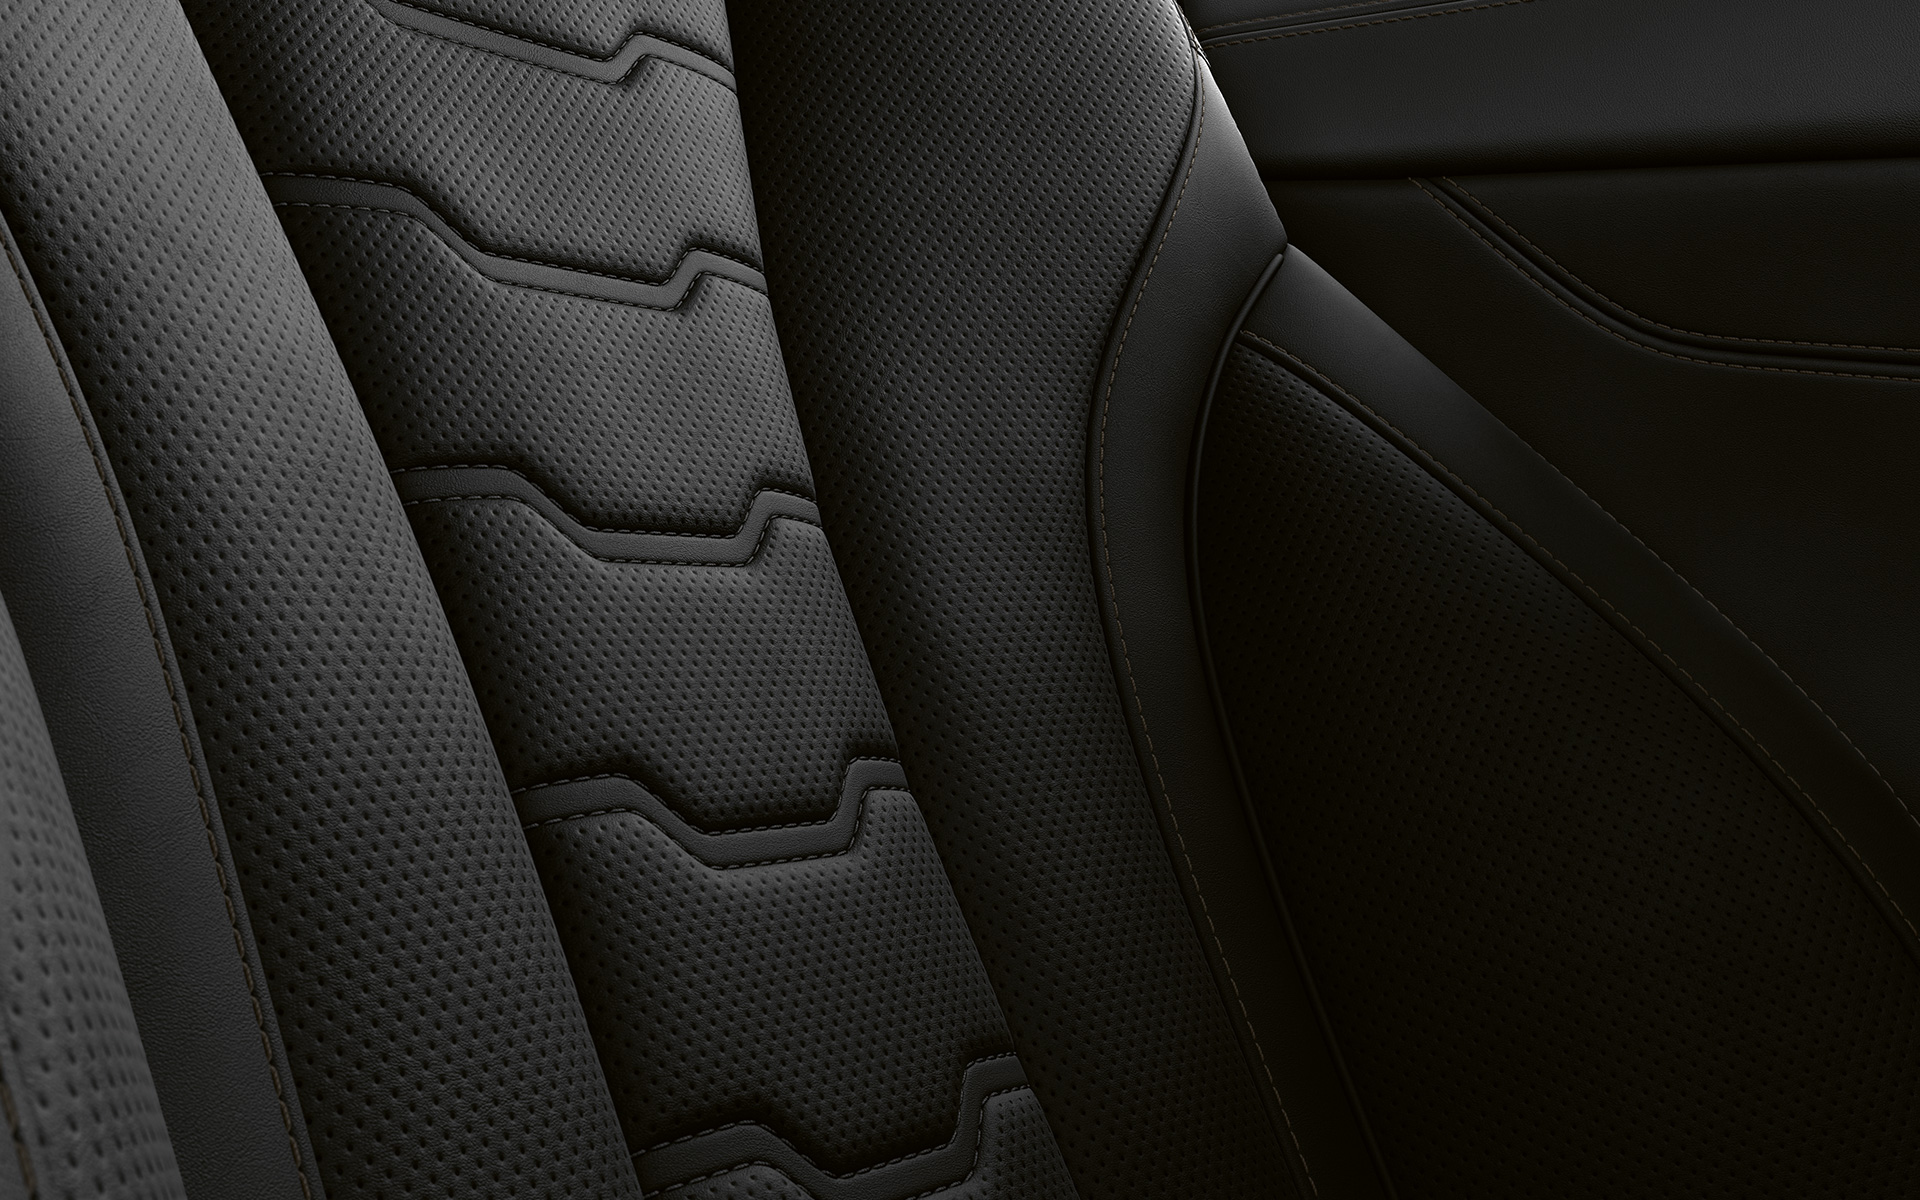 Close-up of upholstery and stitching of the BMW 8 Series Coupé.